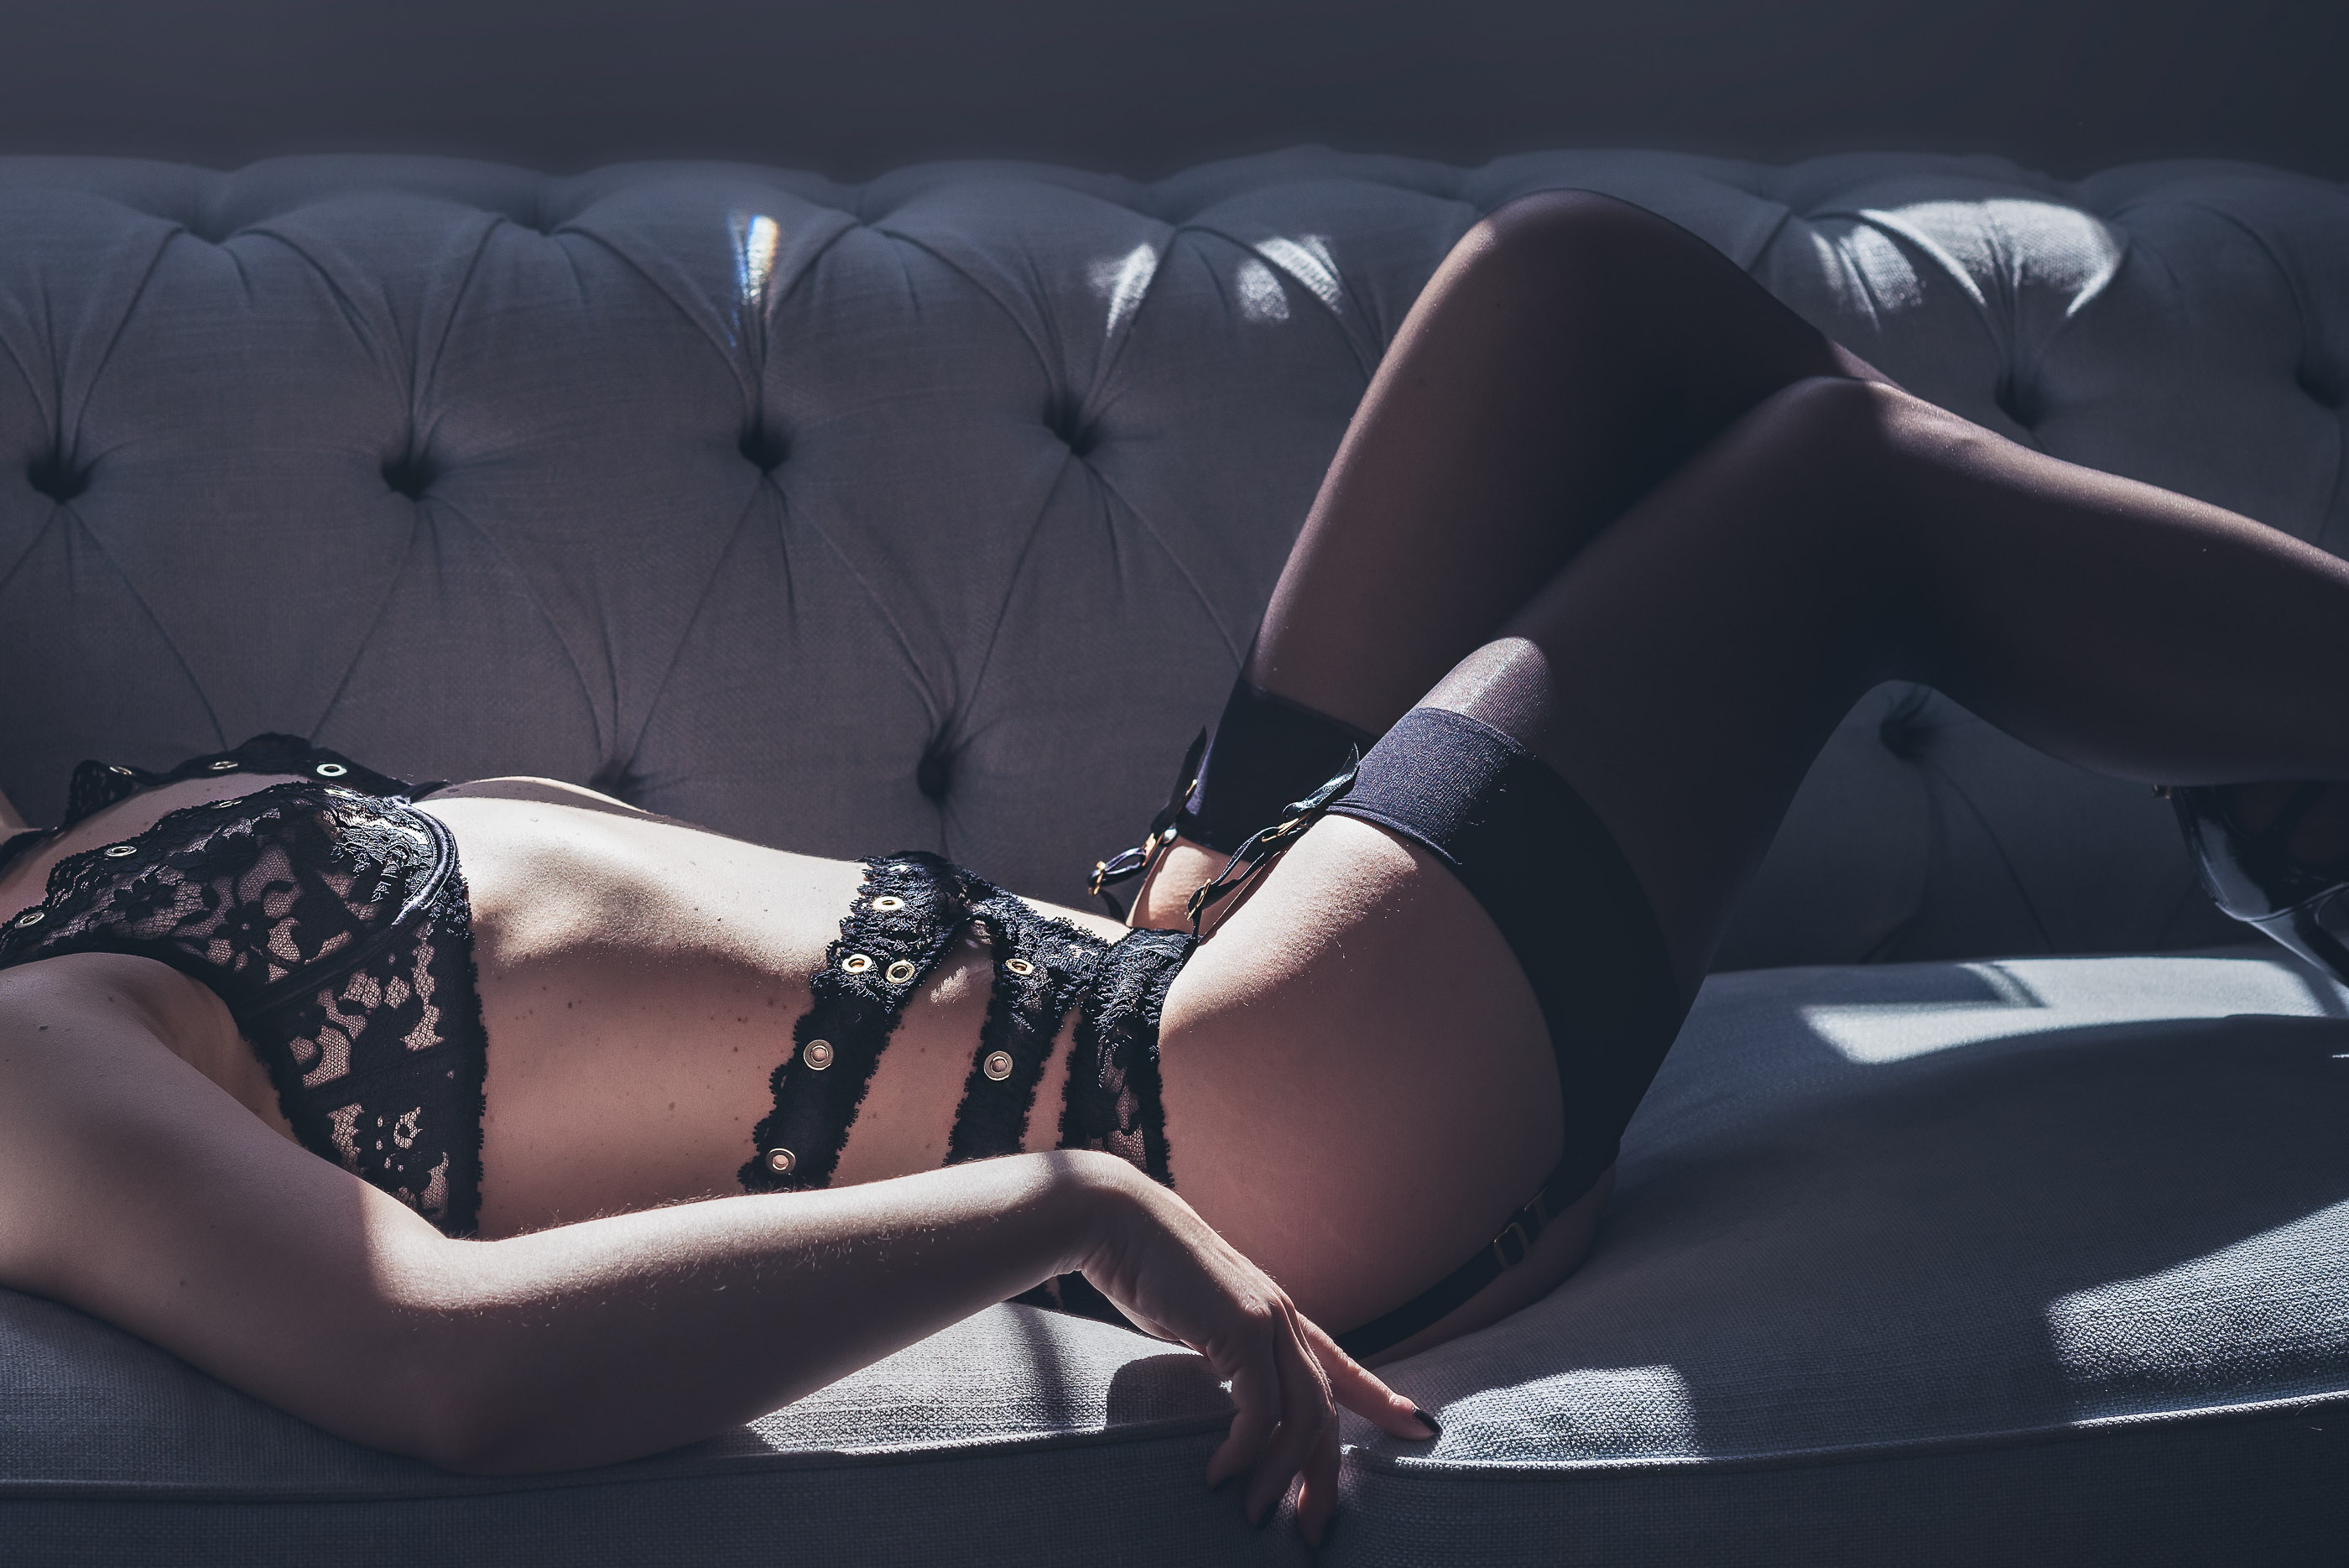 Boudoir Photography showcasing designer lace lingerie, suspenders and stockings laying in shafts of light